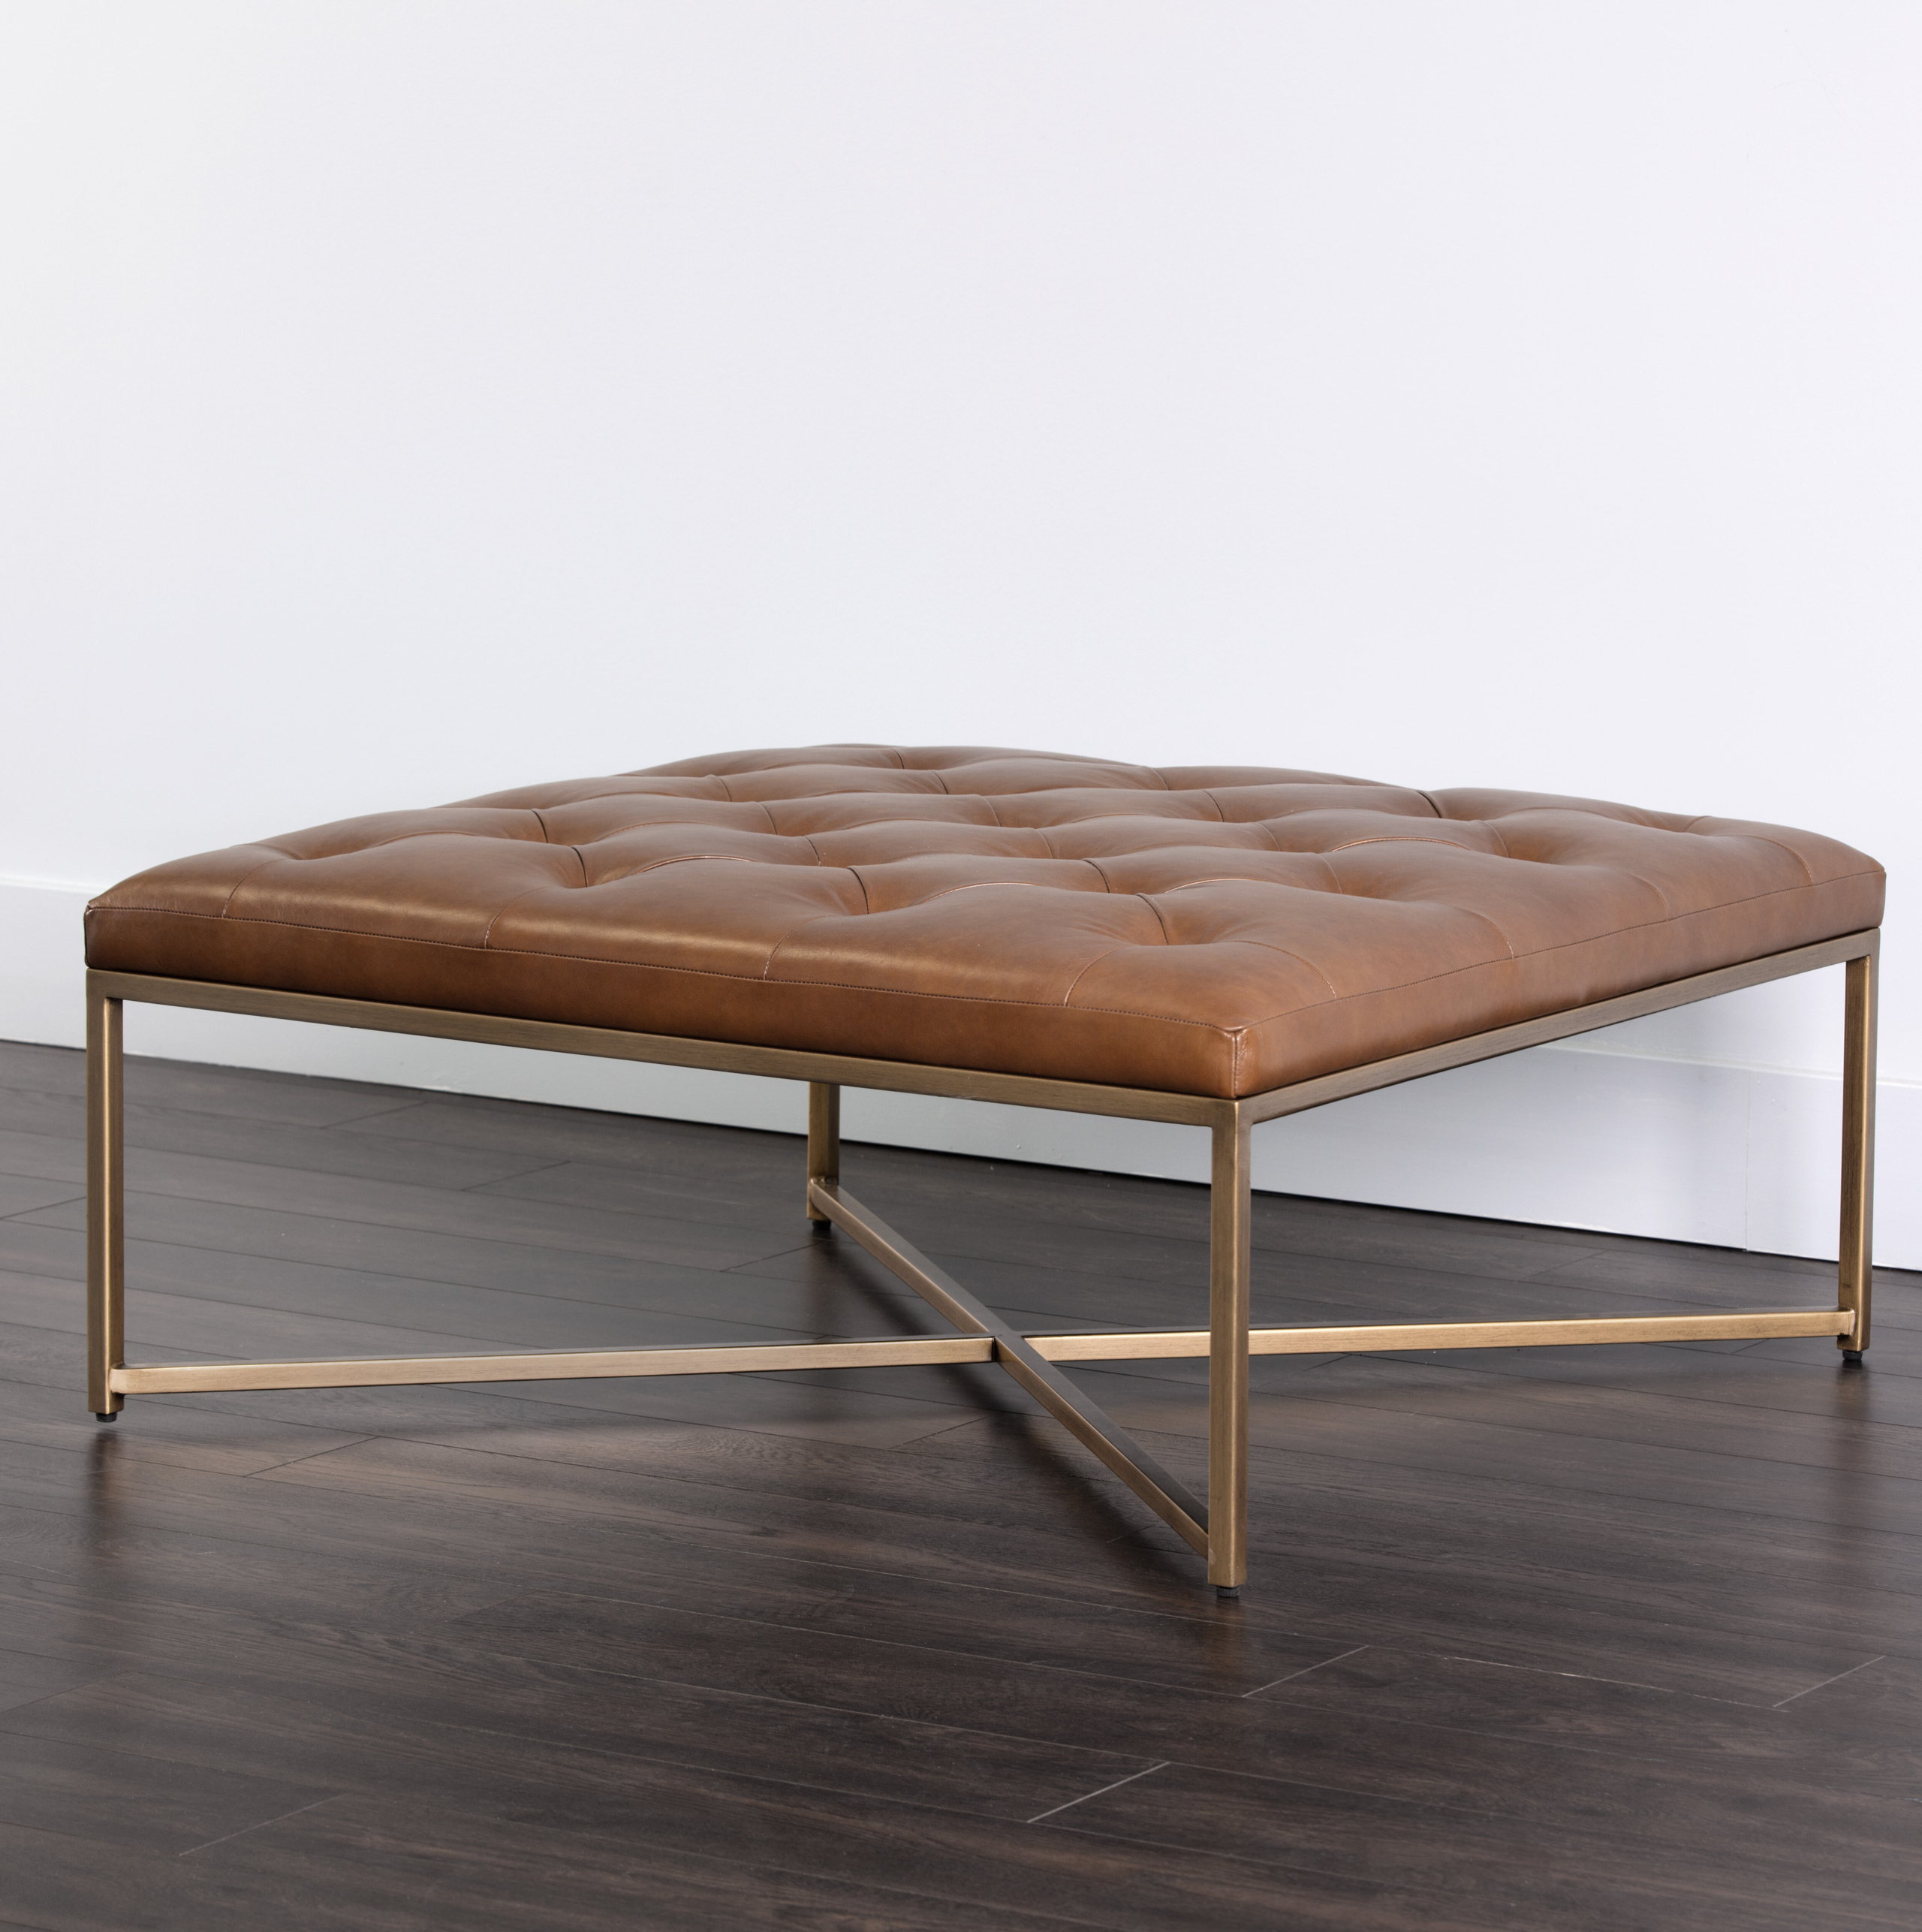 Square Leather Ottoman Coffee Table You Ll Love In 2021 Visualhunt